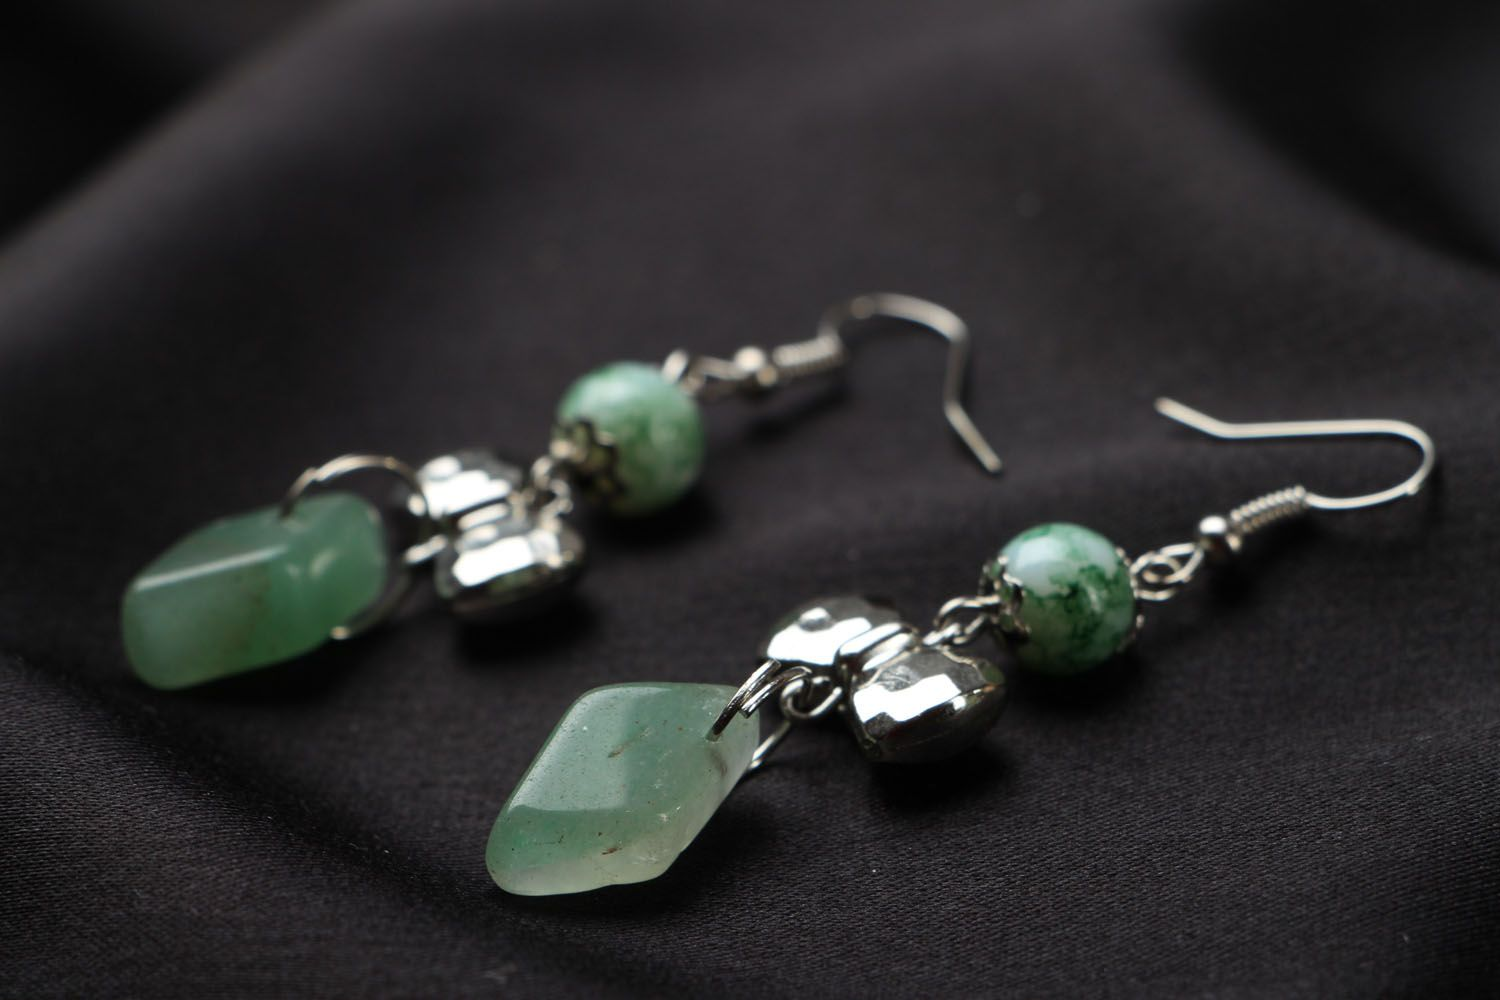 Earrings with nephrite charms photo 2